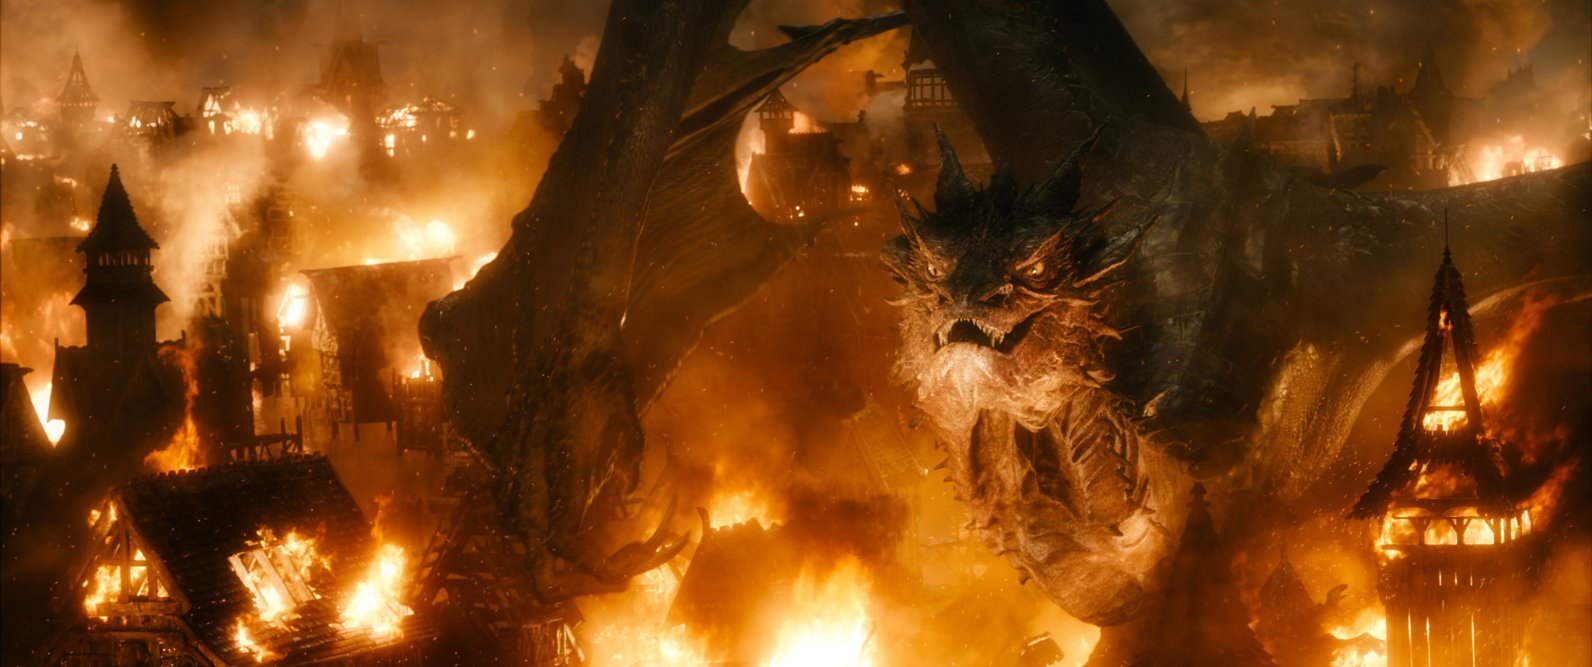 These movies do a few things well, Smaug among them, but their pleasures are ultimately few and far between.